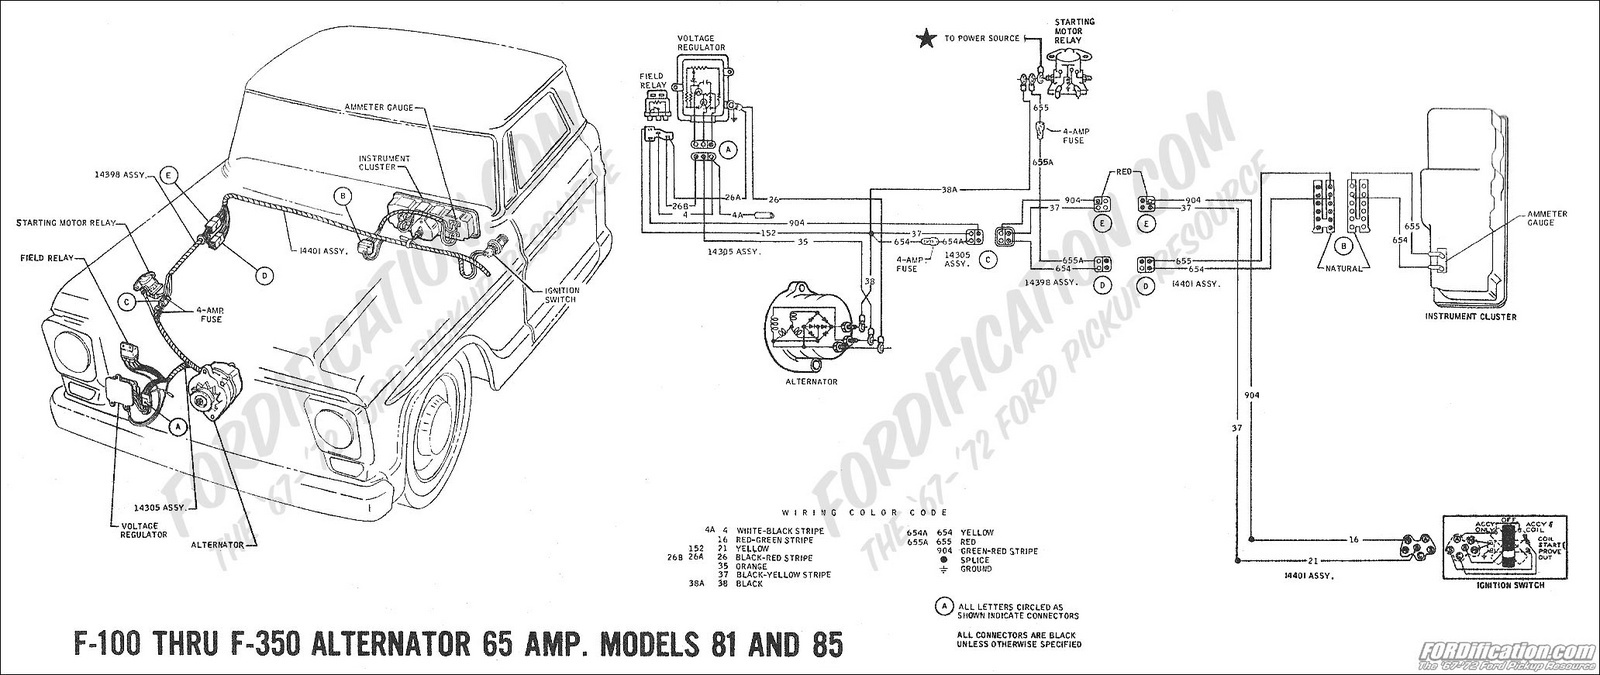 1966 ford f100 wire diagram wiring diagram 1985 Ford Truck Alternator Wiring Diagrams 1979 ford f100 engine diagram distributor wiring diagram detailed1979 ford f100 engine diagram distributor data wiring